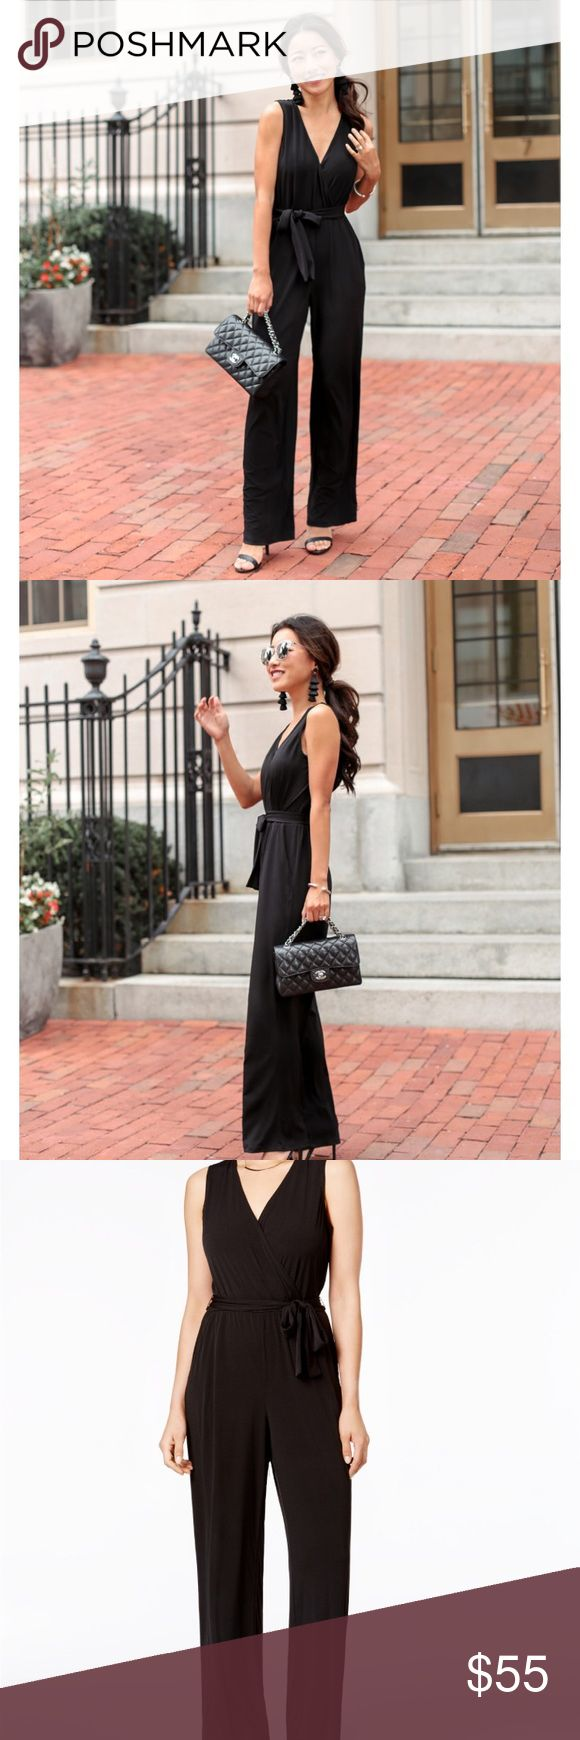 BNWT NY Collection black jumpsuit XS Pic courtesy of extrapetite.com. Brand new w tags ny collection jumpsuit in black. Perfect comfortable alternative to the little black dress. Very slimming when worn! NY Collection Pants Jumpsuits & Rompers